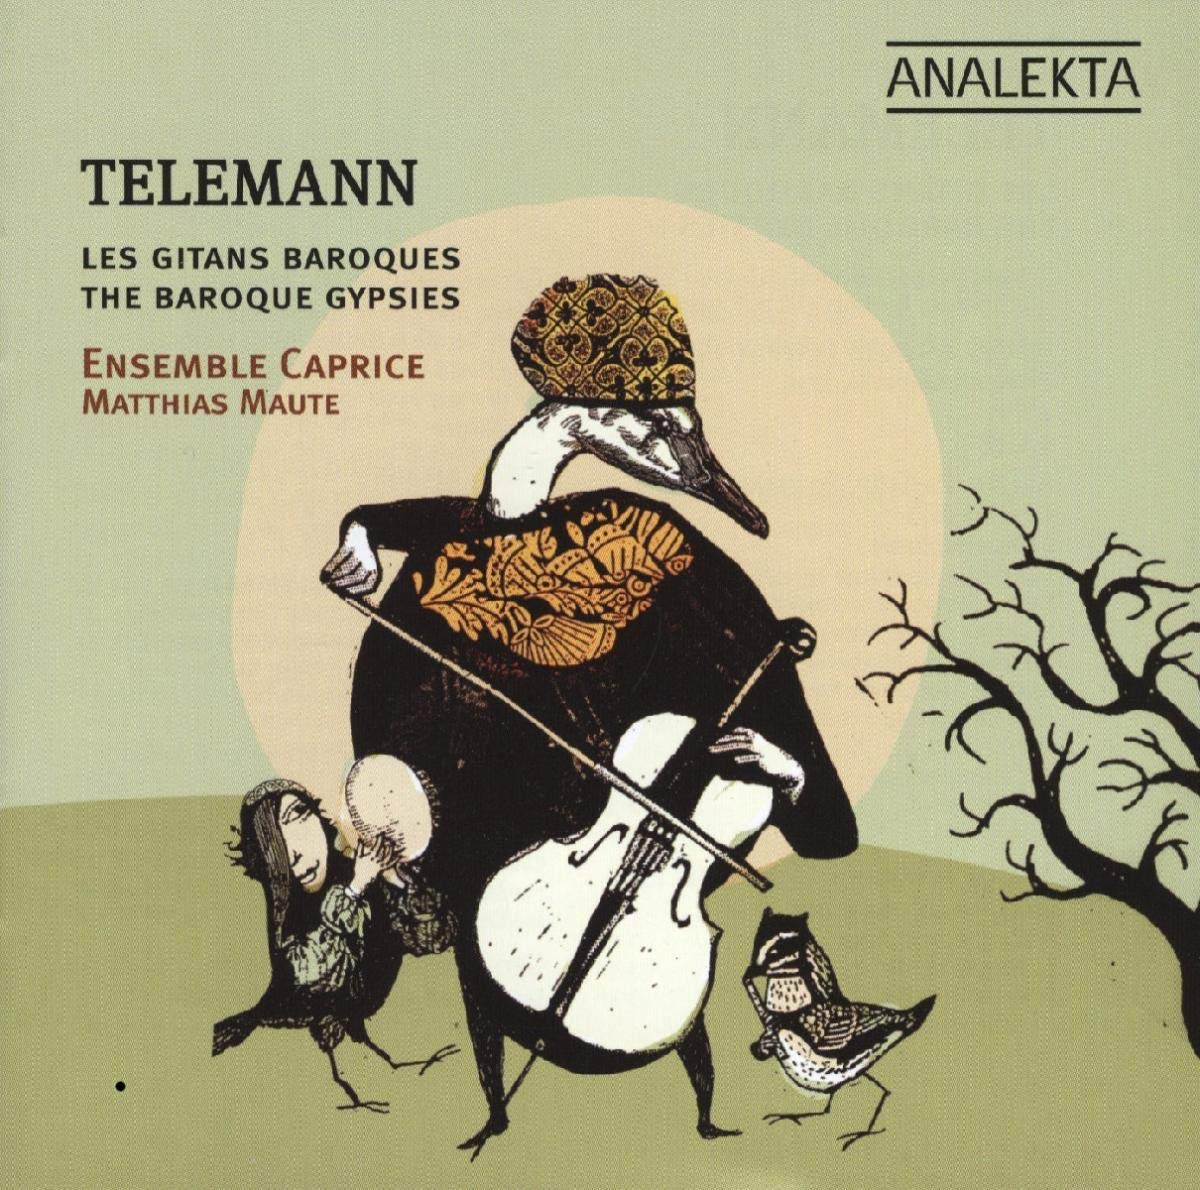 Telemann & Baroque Gypsies by ANALEKTA.